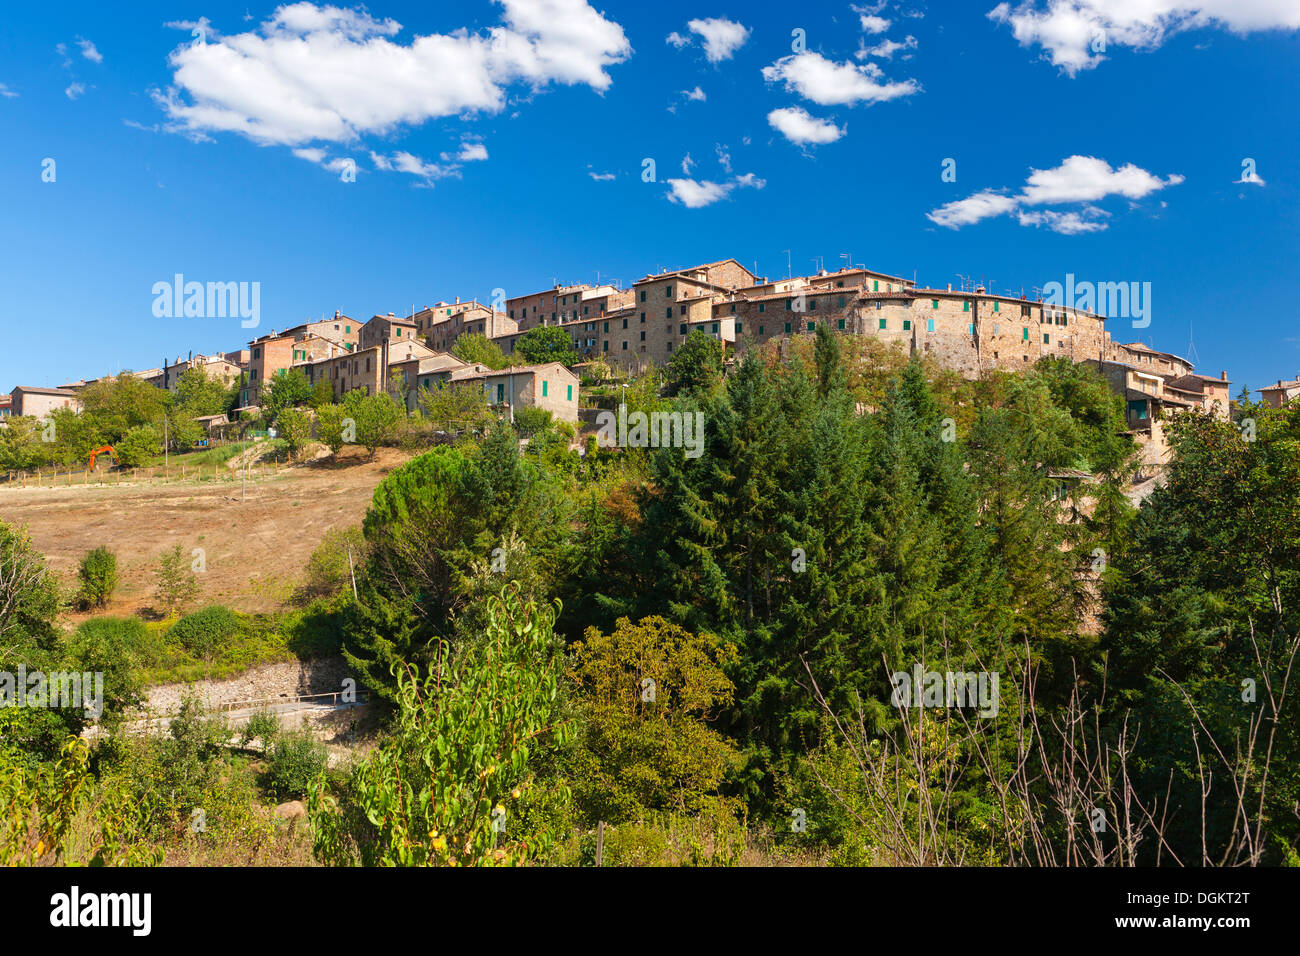 Distant view of Monticiano. - Stock Image